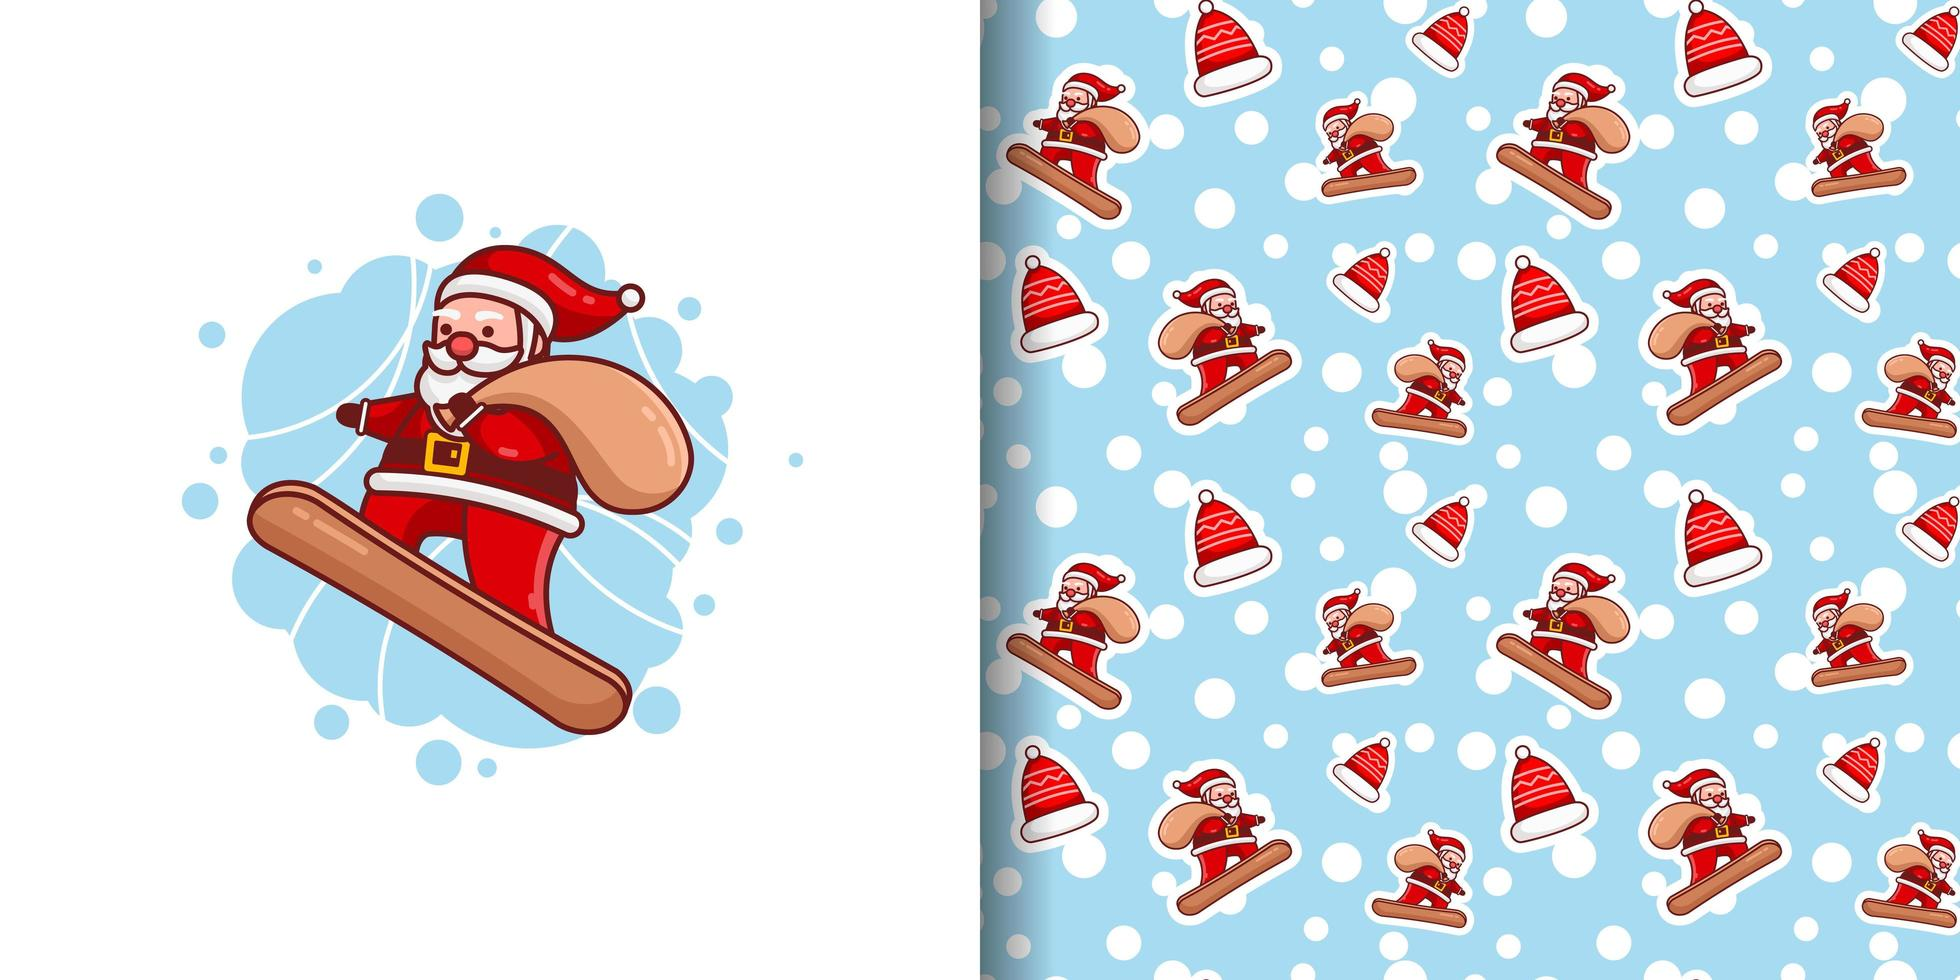 Christmas Cute Santa Delivering Gifts on Snowboard Cartoon Pattern vector